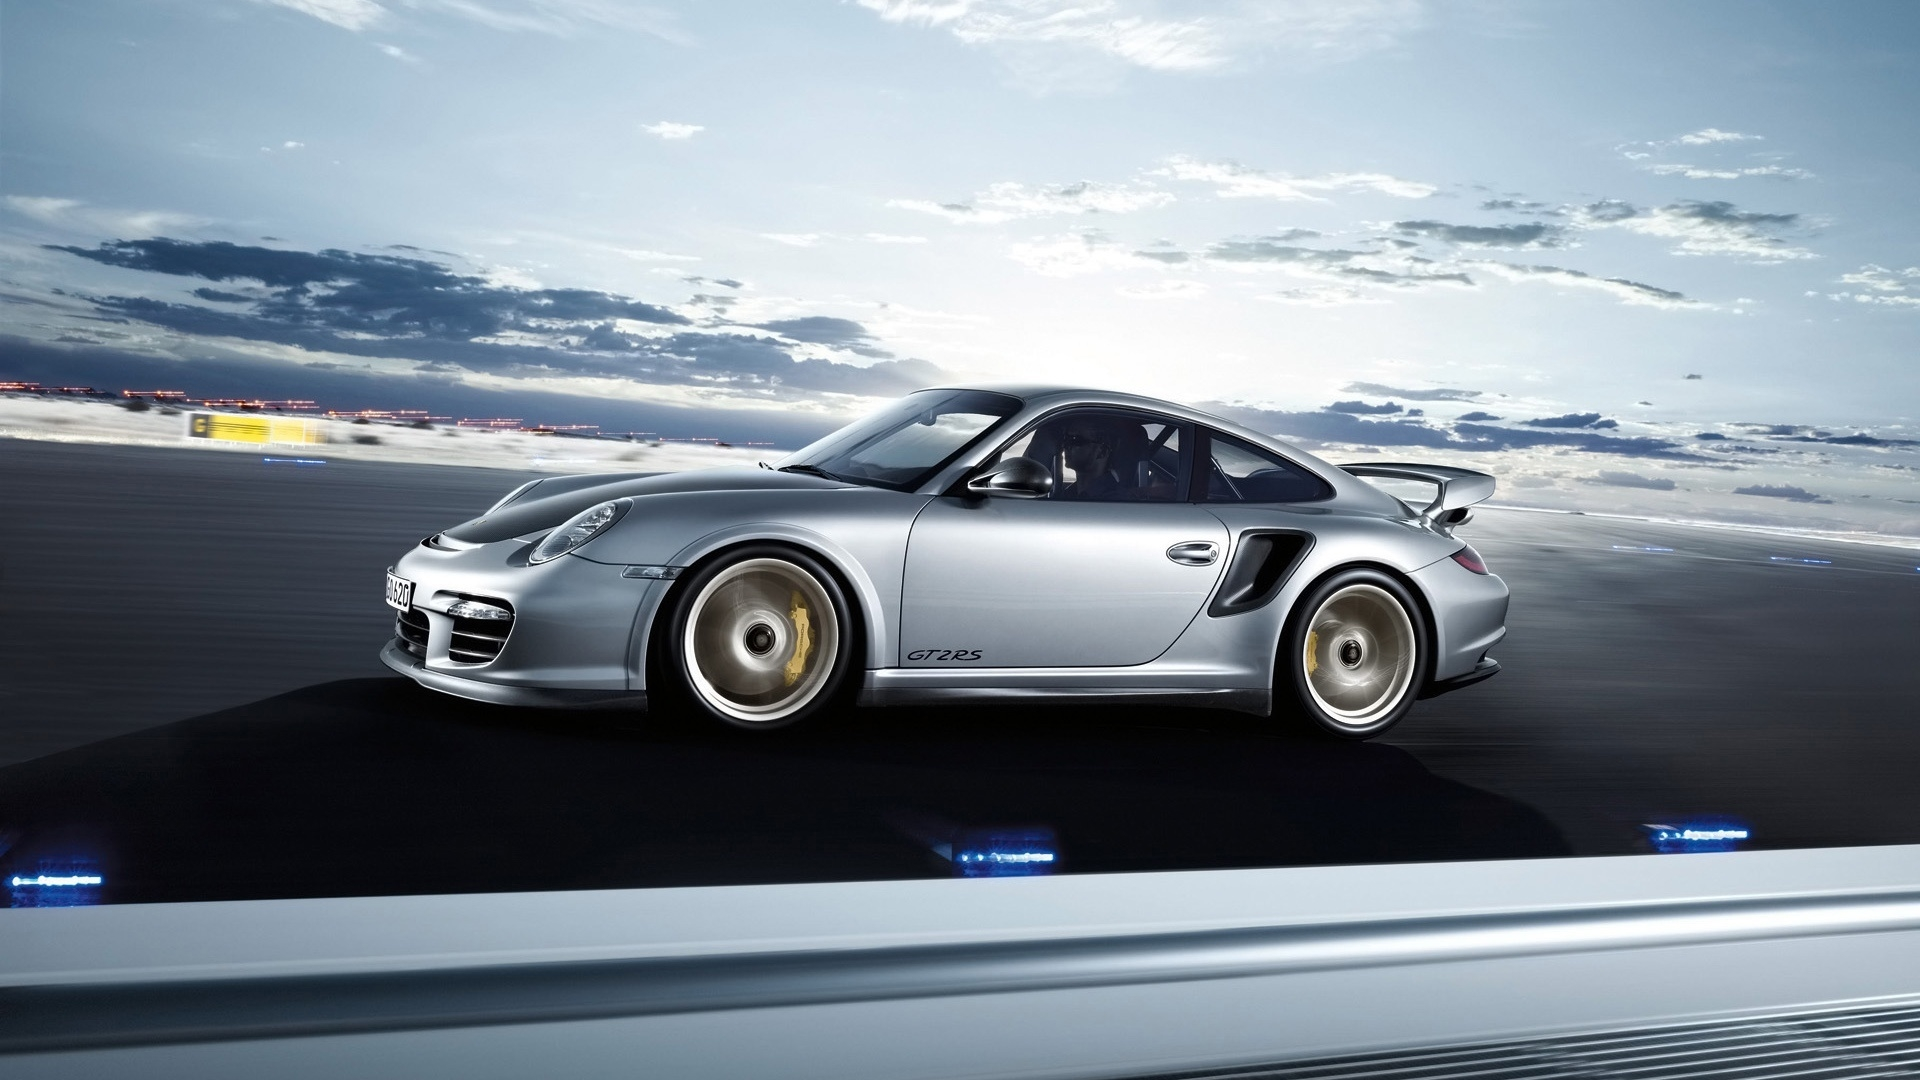 porsche 911 gt2 rs 2011 speed 1920 x 1080 hdtv 1080p wallpaper. Black Bedroom Furniture Sets. Home Design Ideas